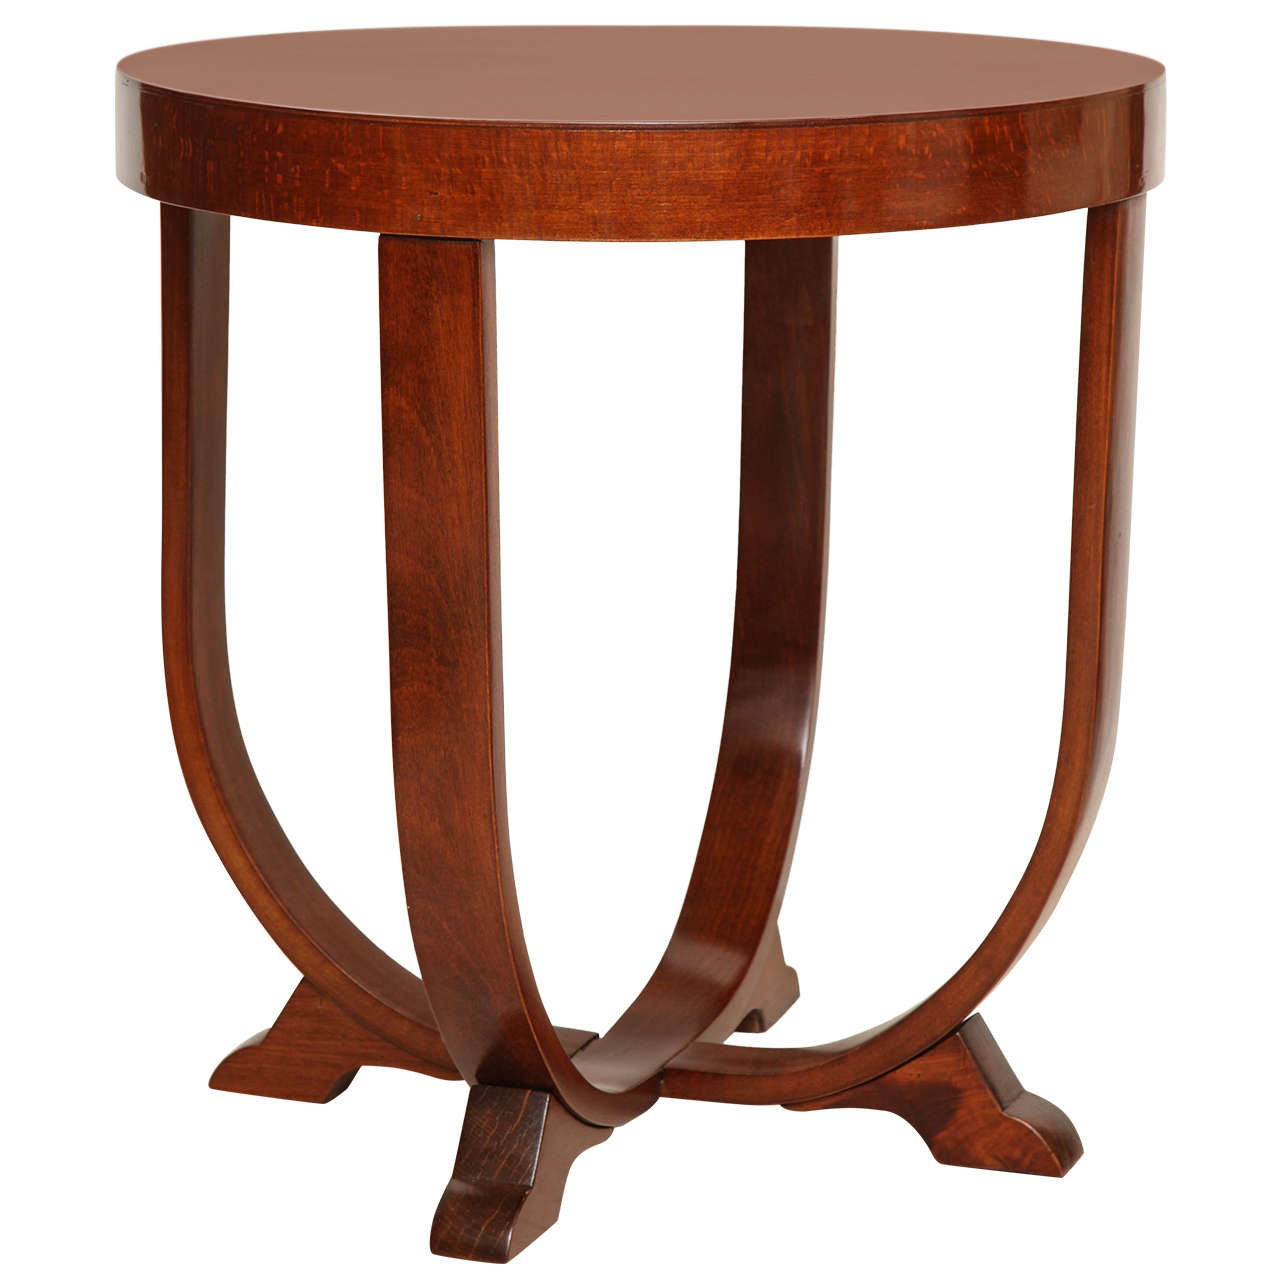 round beech art deco side table with curved supports italy circa 1940s at 1stdibs. Black Bedroom Furniture Sets. Home Design Ideas